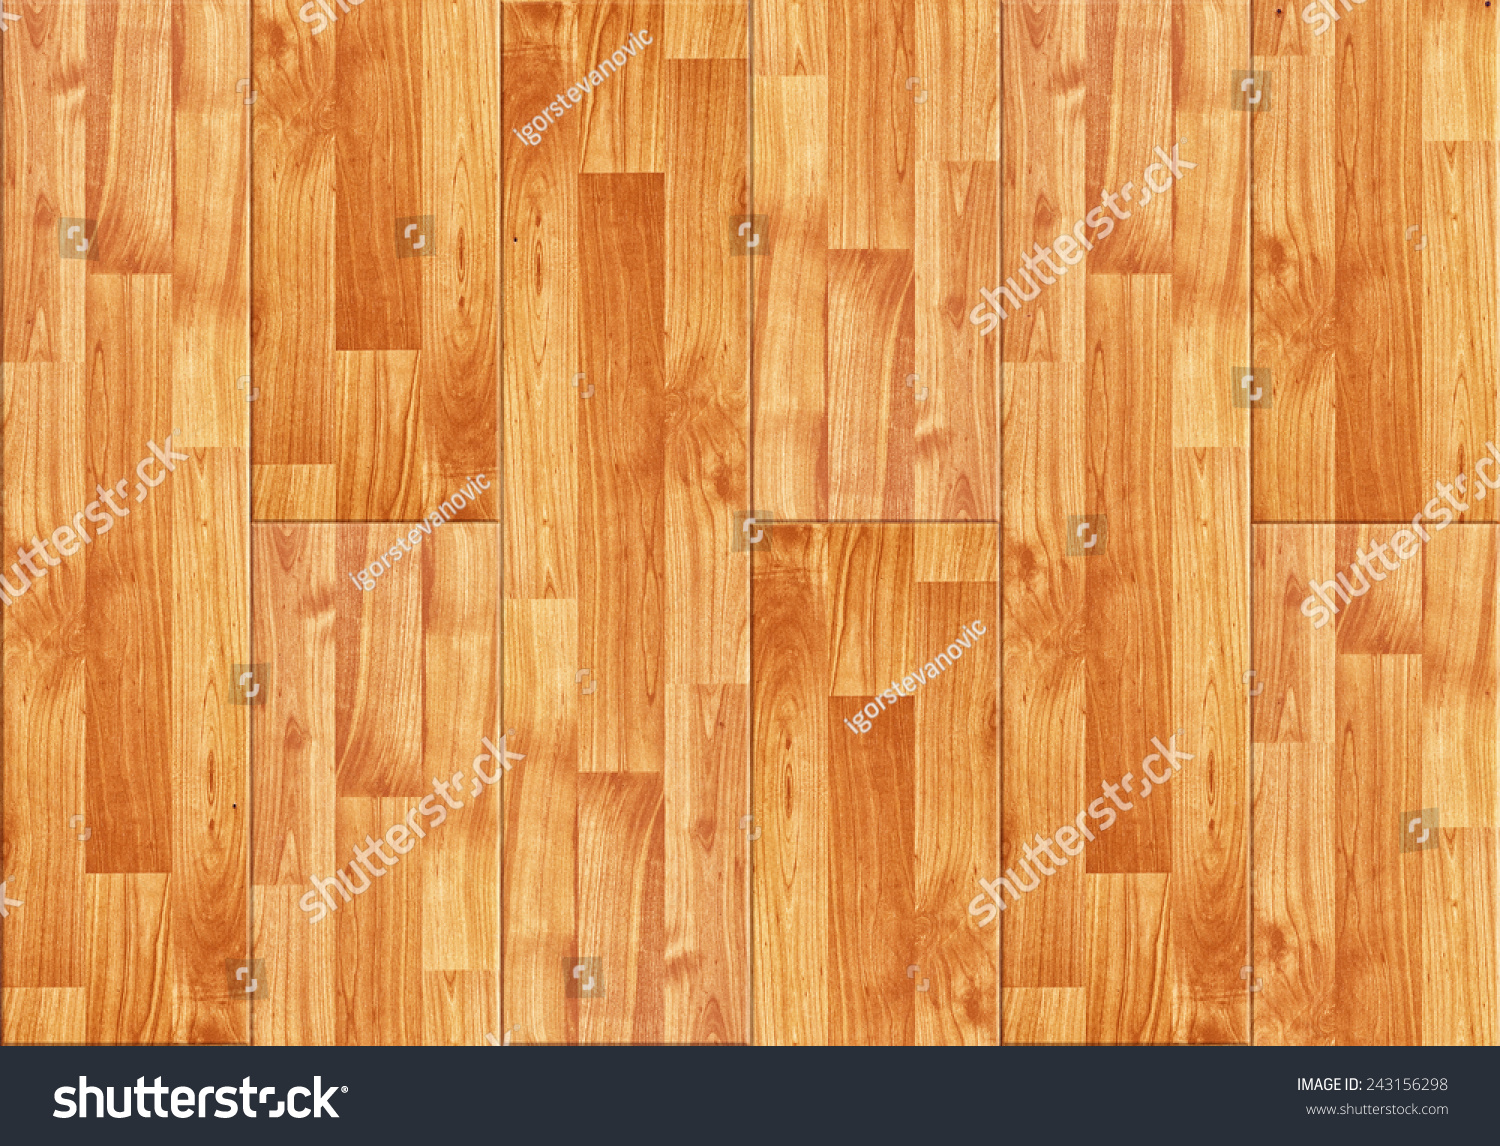 Top view seamless wood laminated parquet stock photo